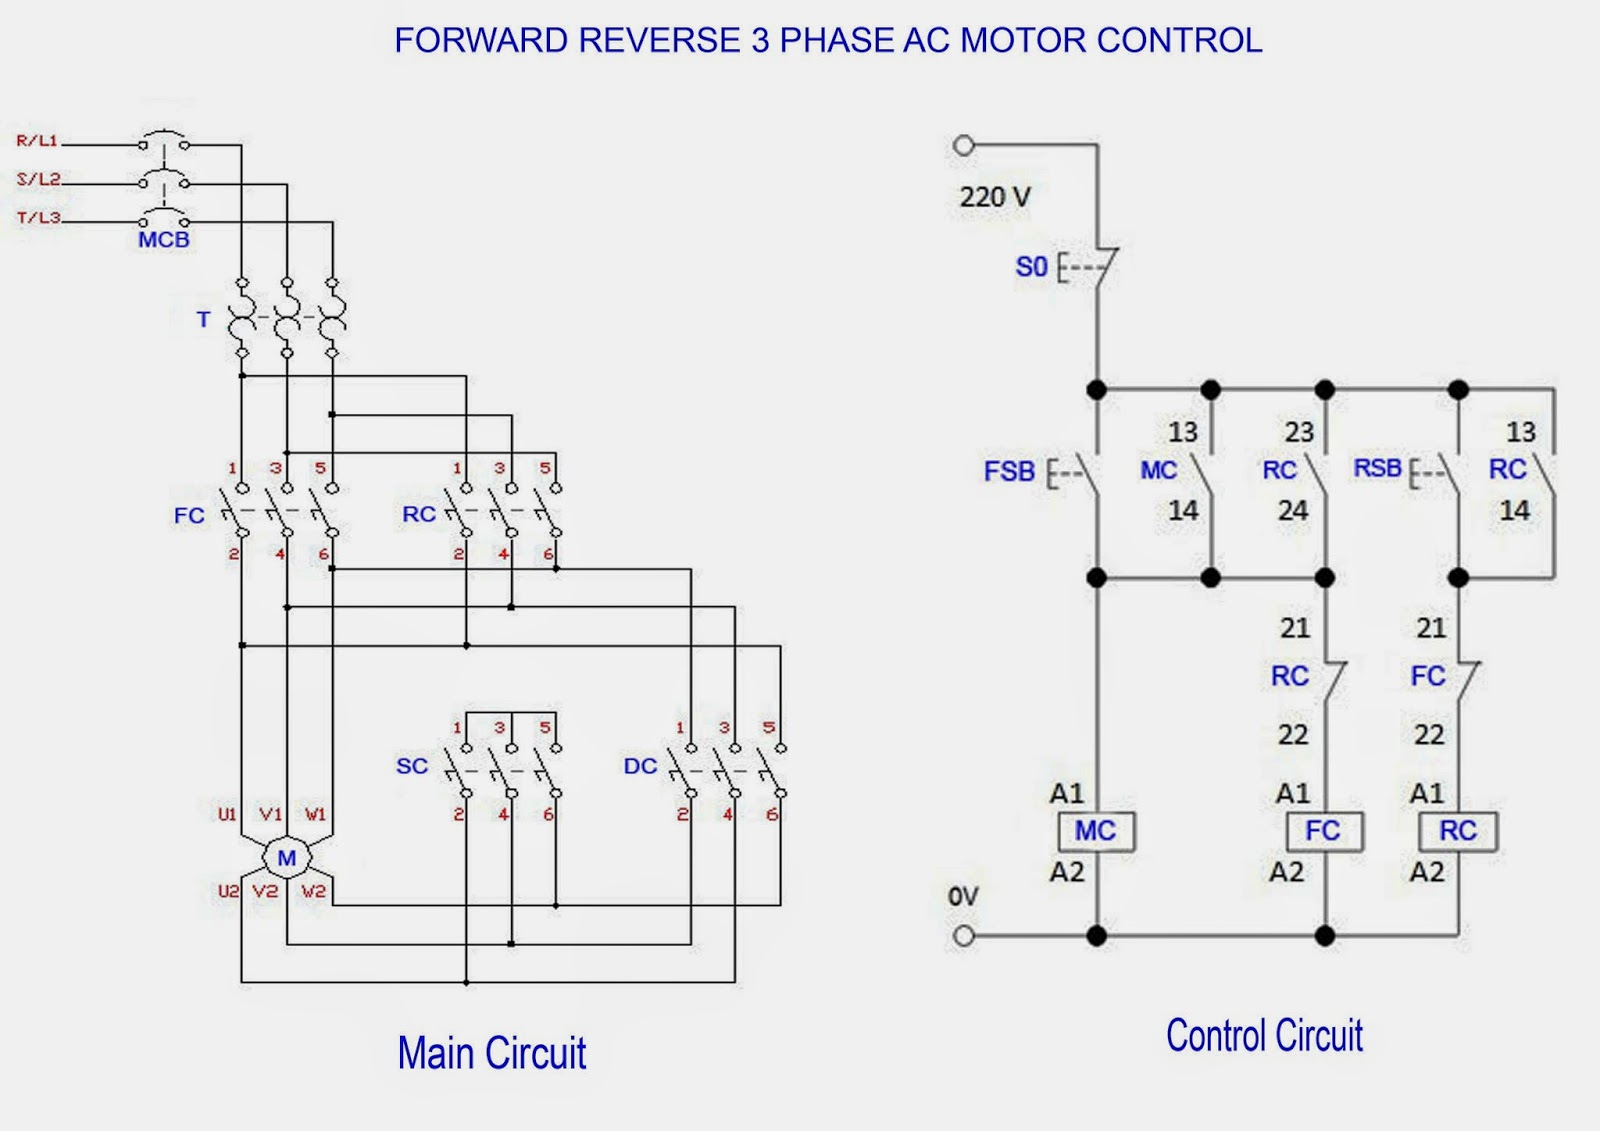 forward reverse 3 phase ac motor control wiring diagram electrical air conditioning contactor wiring diagram forward reverse star delta wiring diagram